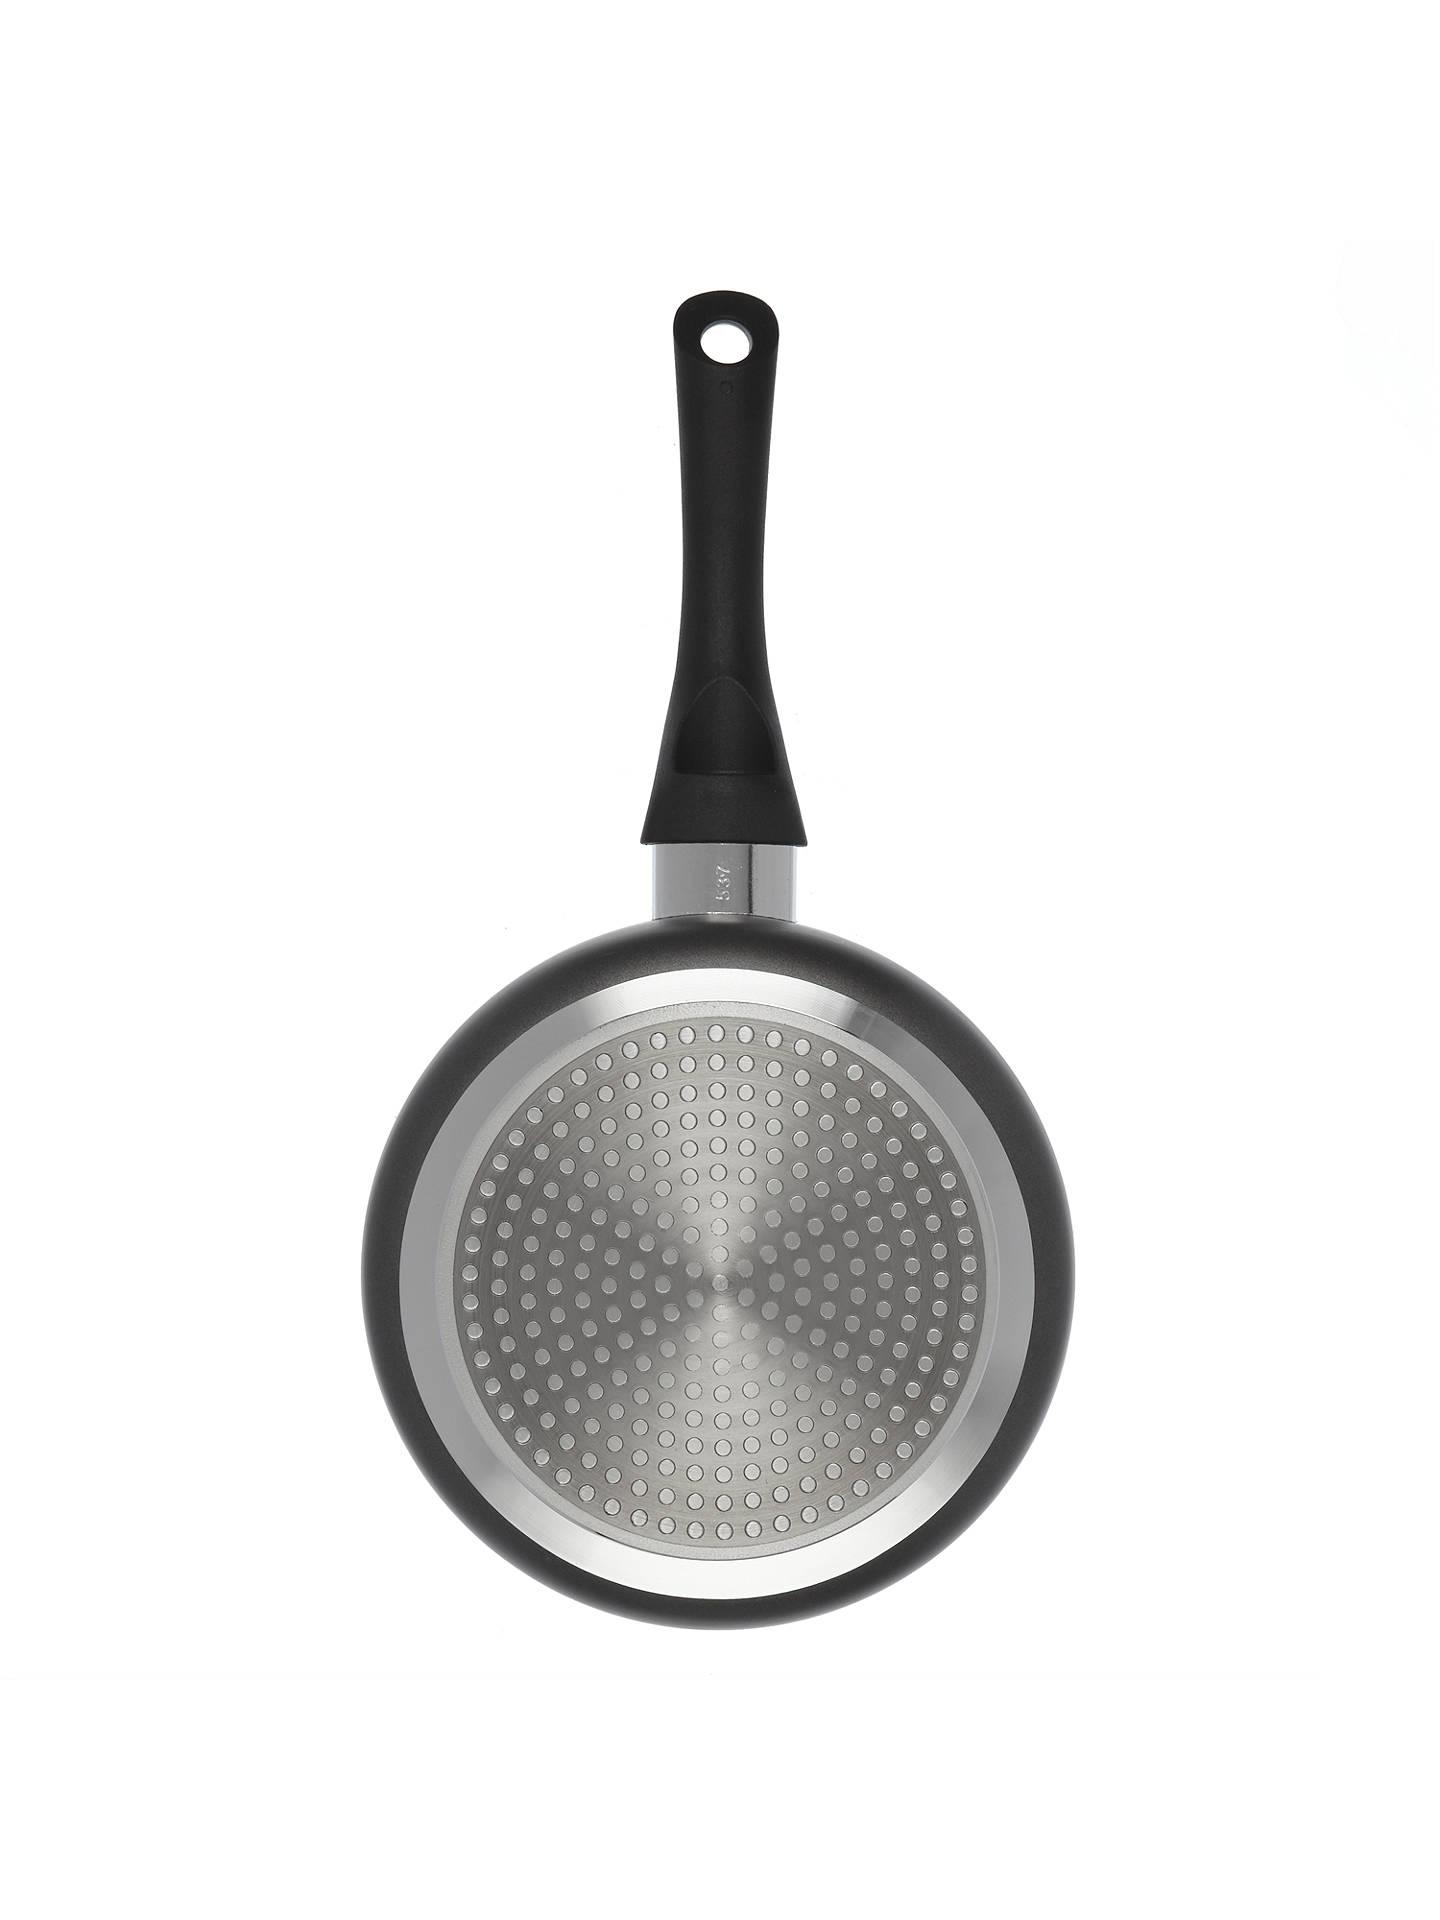 BuyJohn Lewis & Partners The Basics Non-Stick Saucepan with Lid, 16cm Online at johnlewis.com